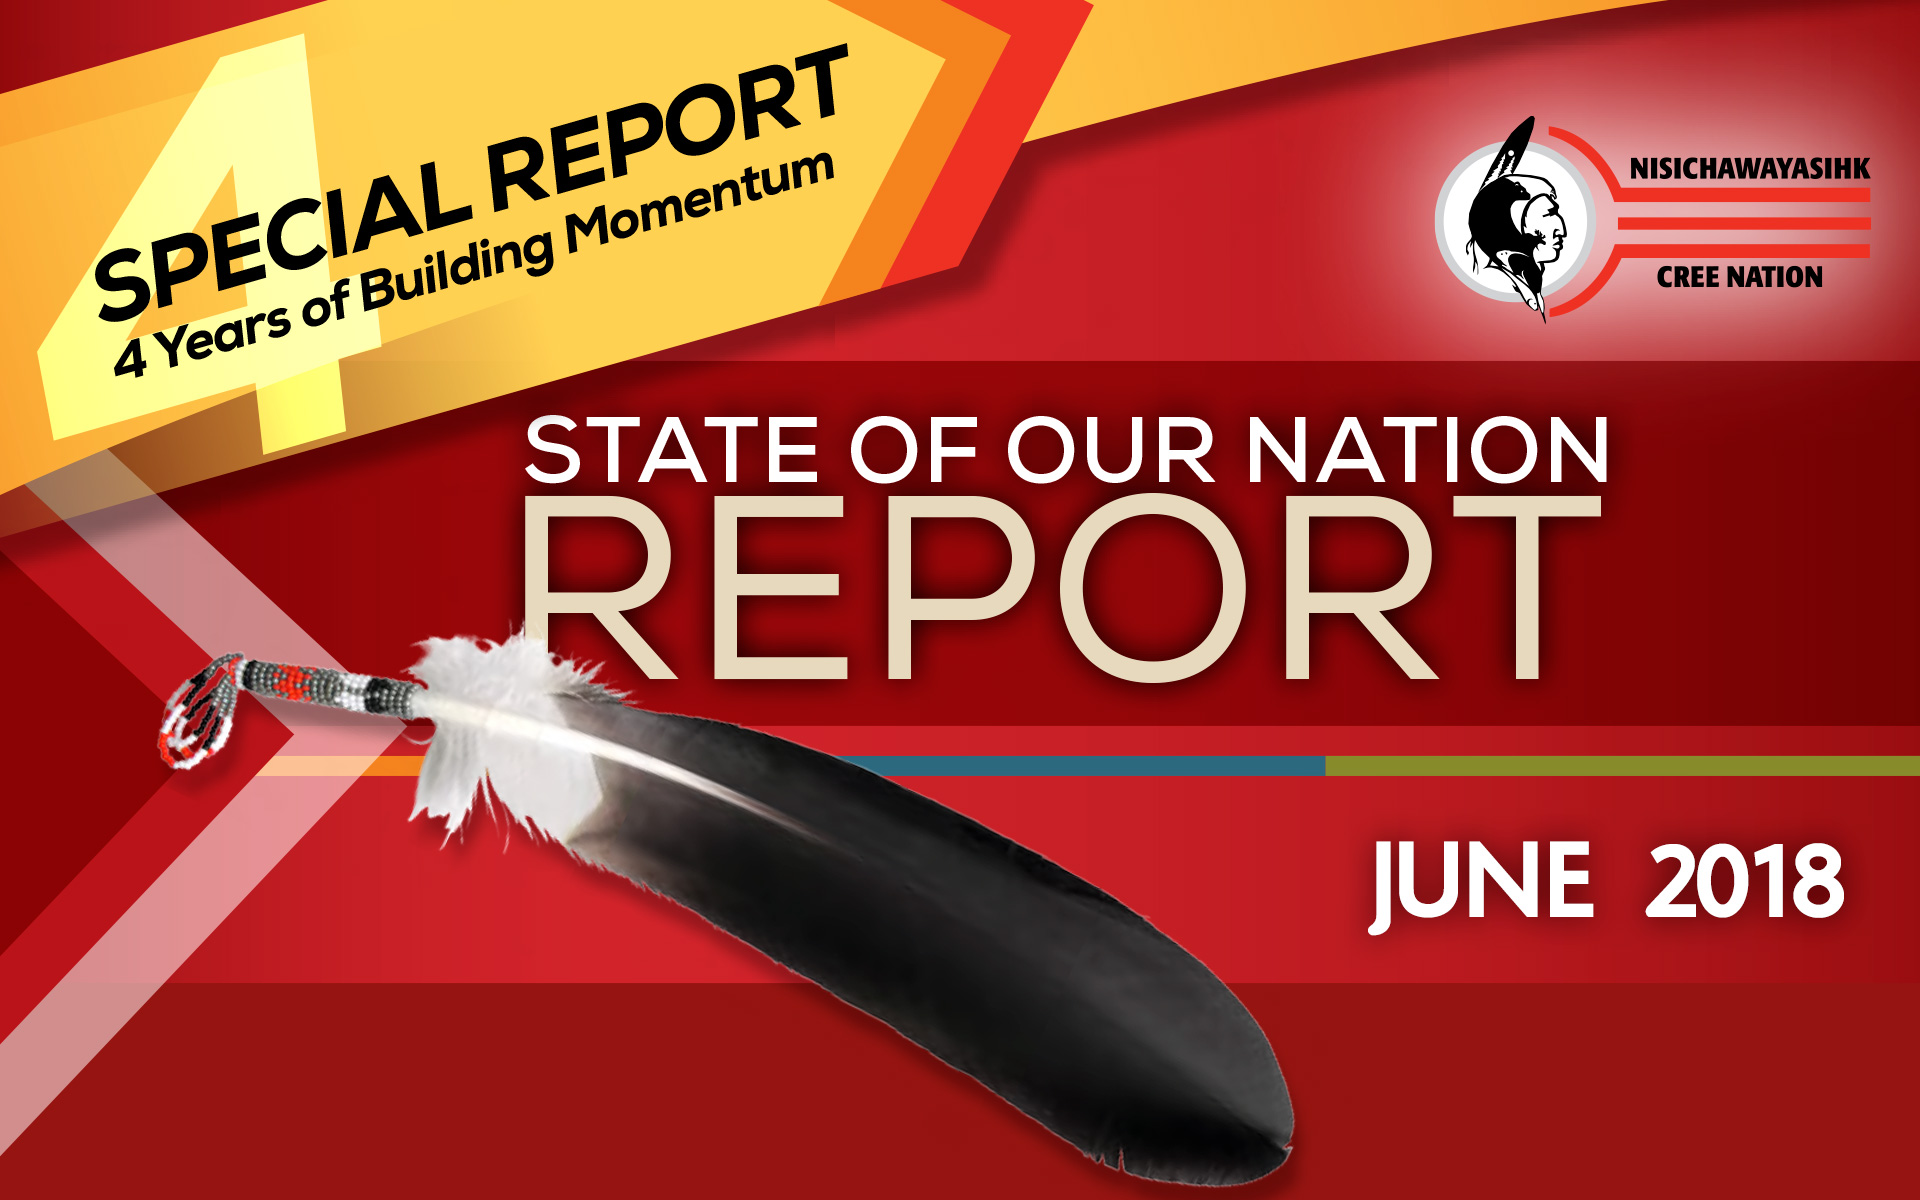 4-Year Special Report